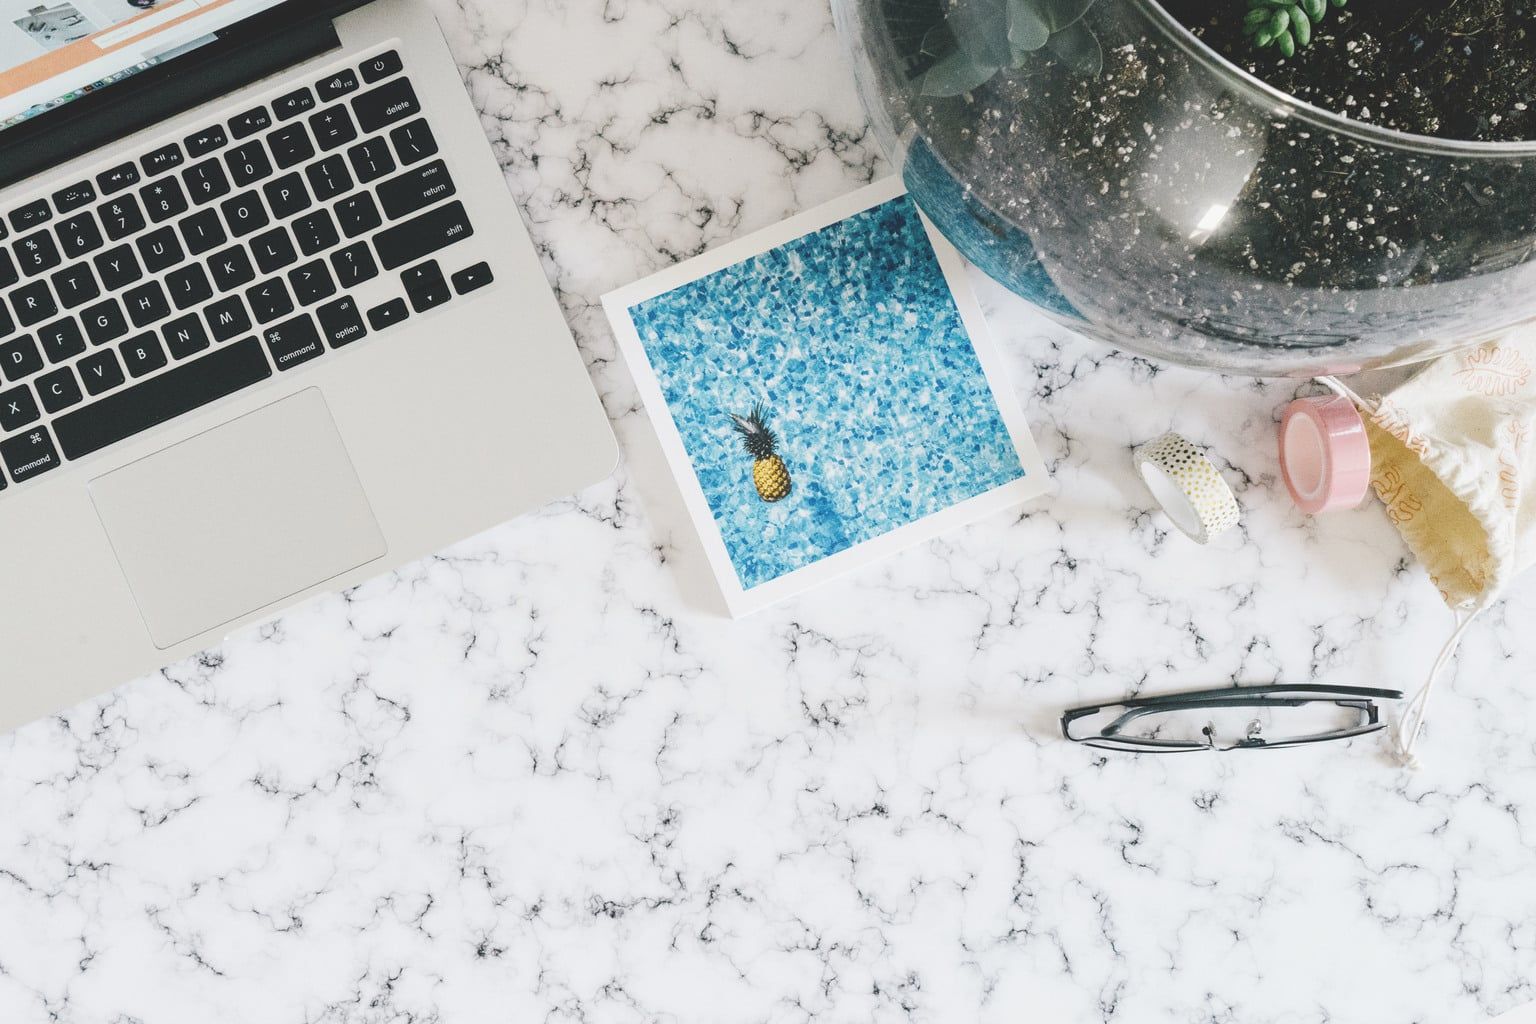 Marble table with laptop, glasses and washi tape